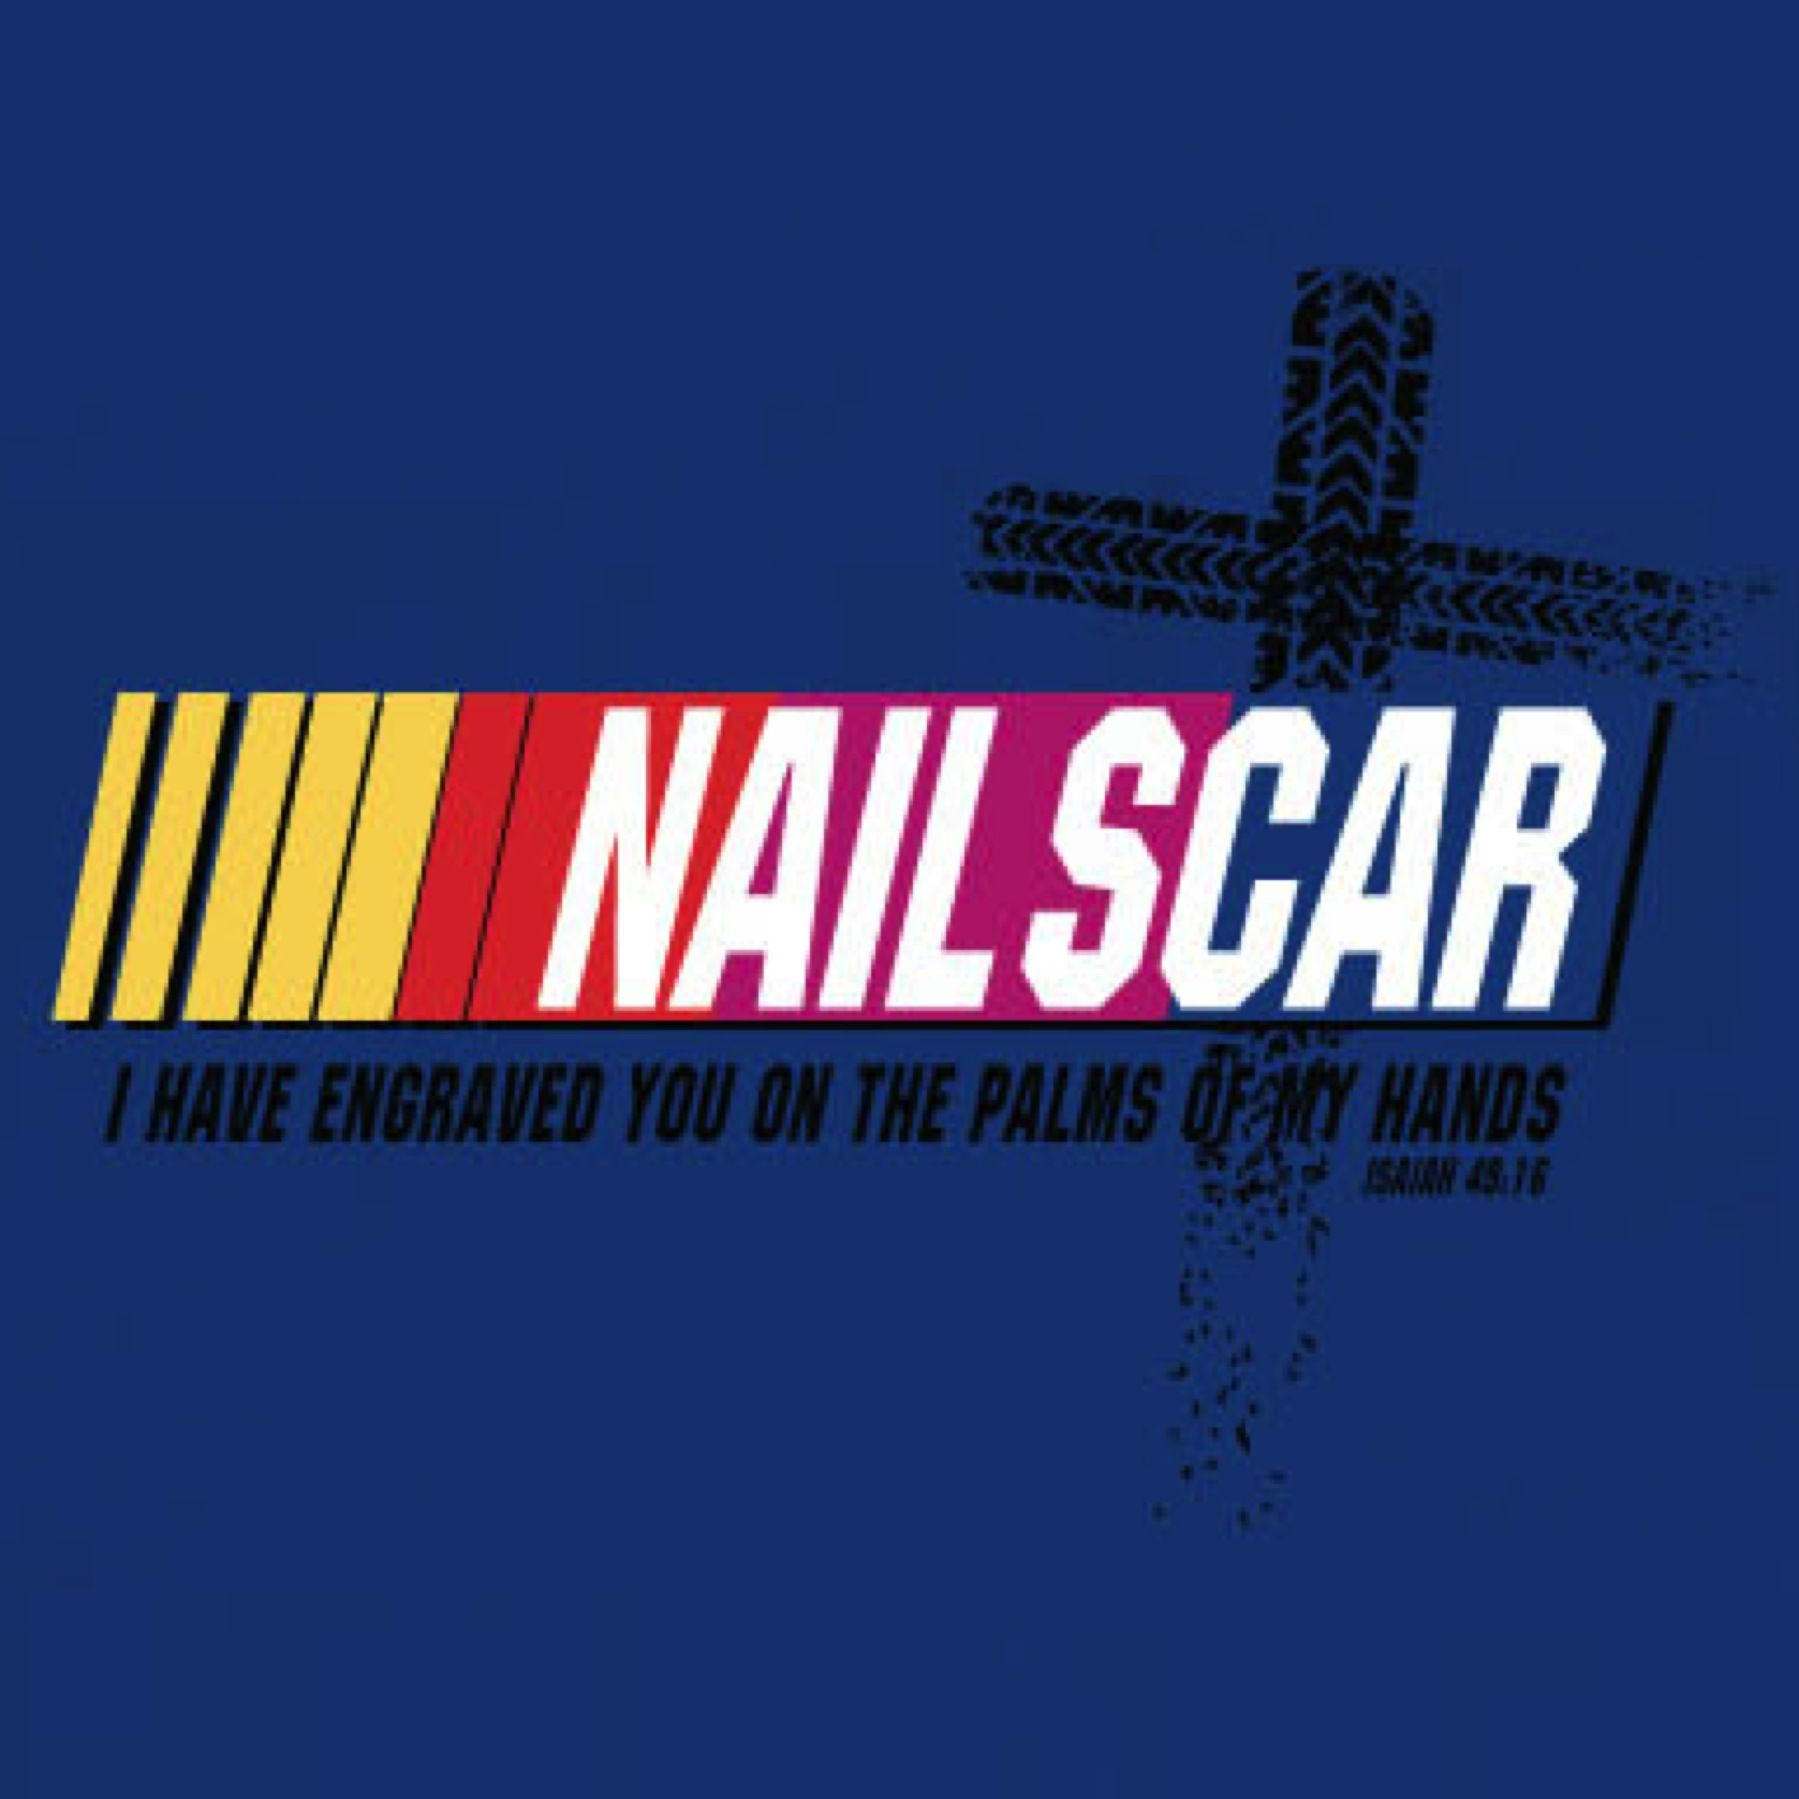 Christian Sports Parody T Shirt Design For Nascar Fans